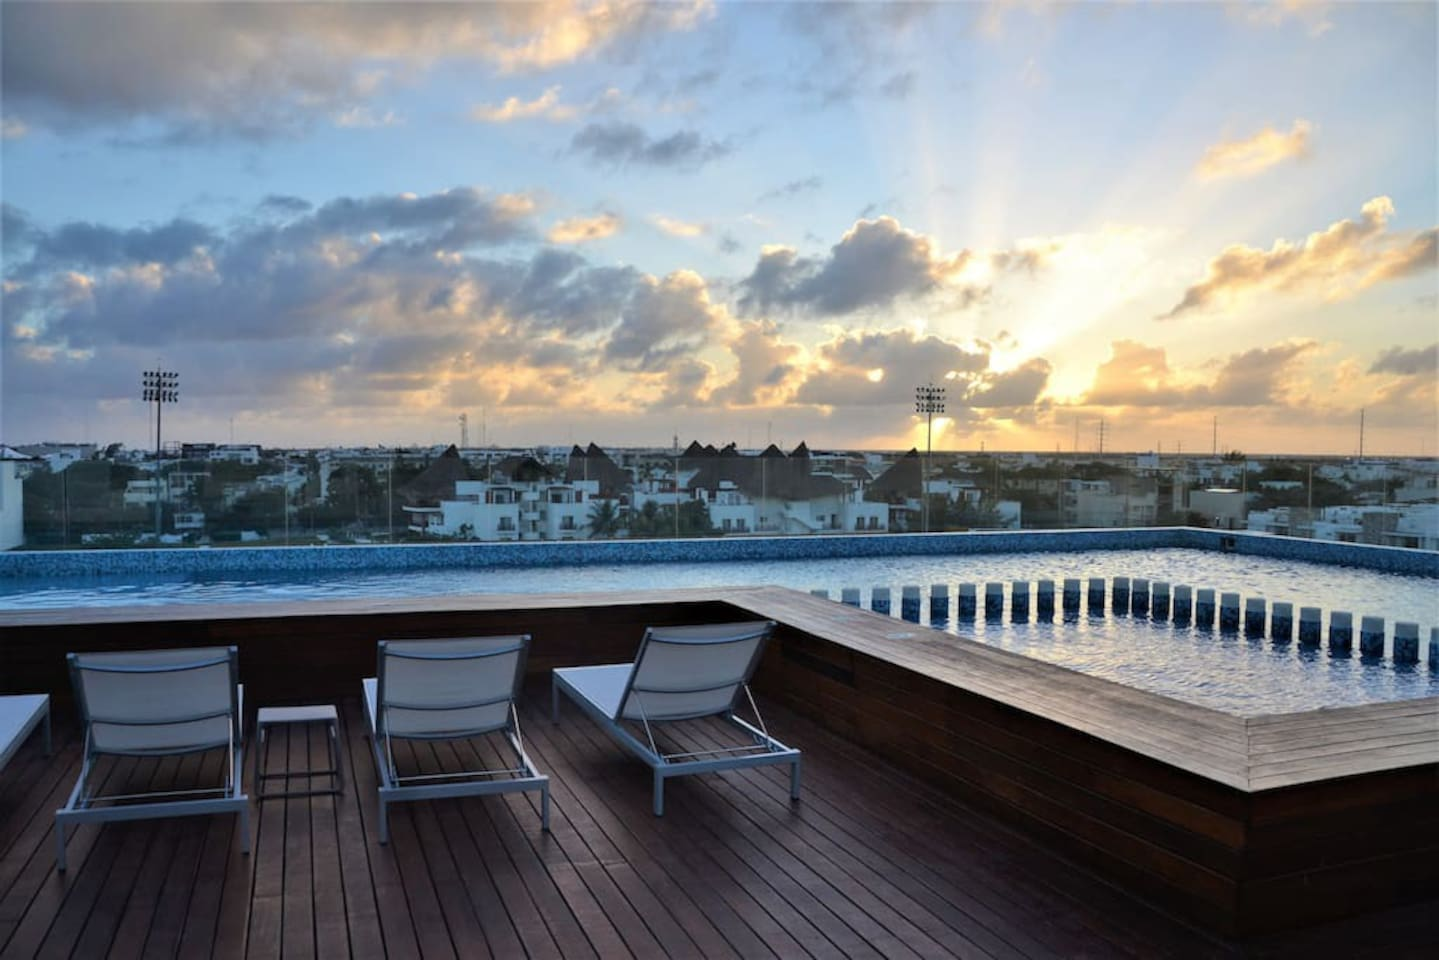 View sunsets in an amazing rooftop with a nice oceanview.